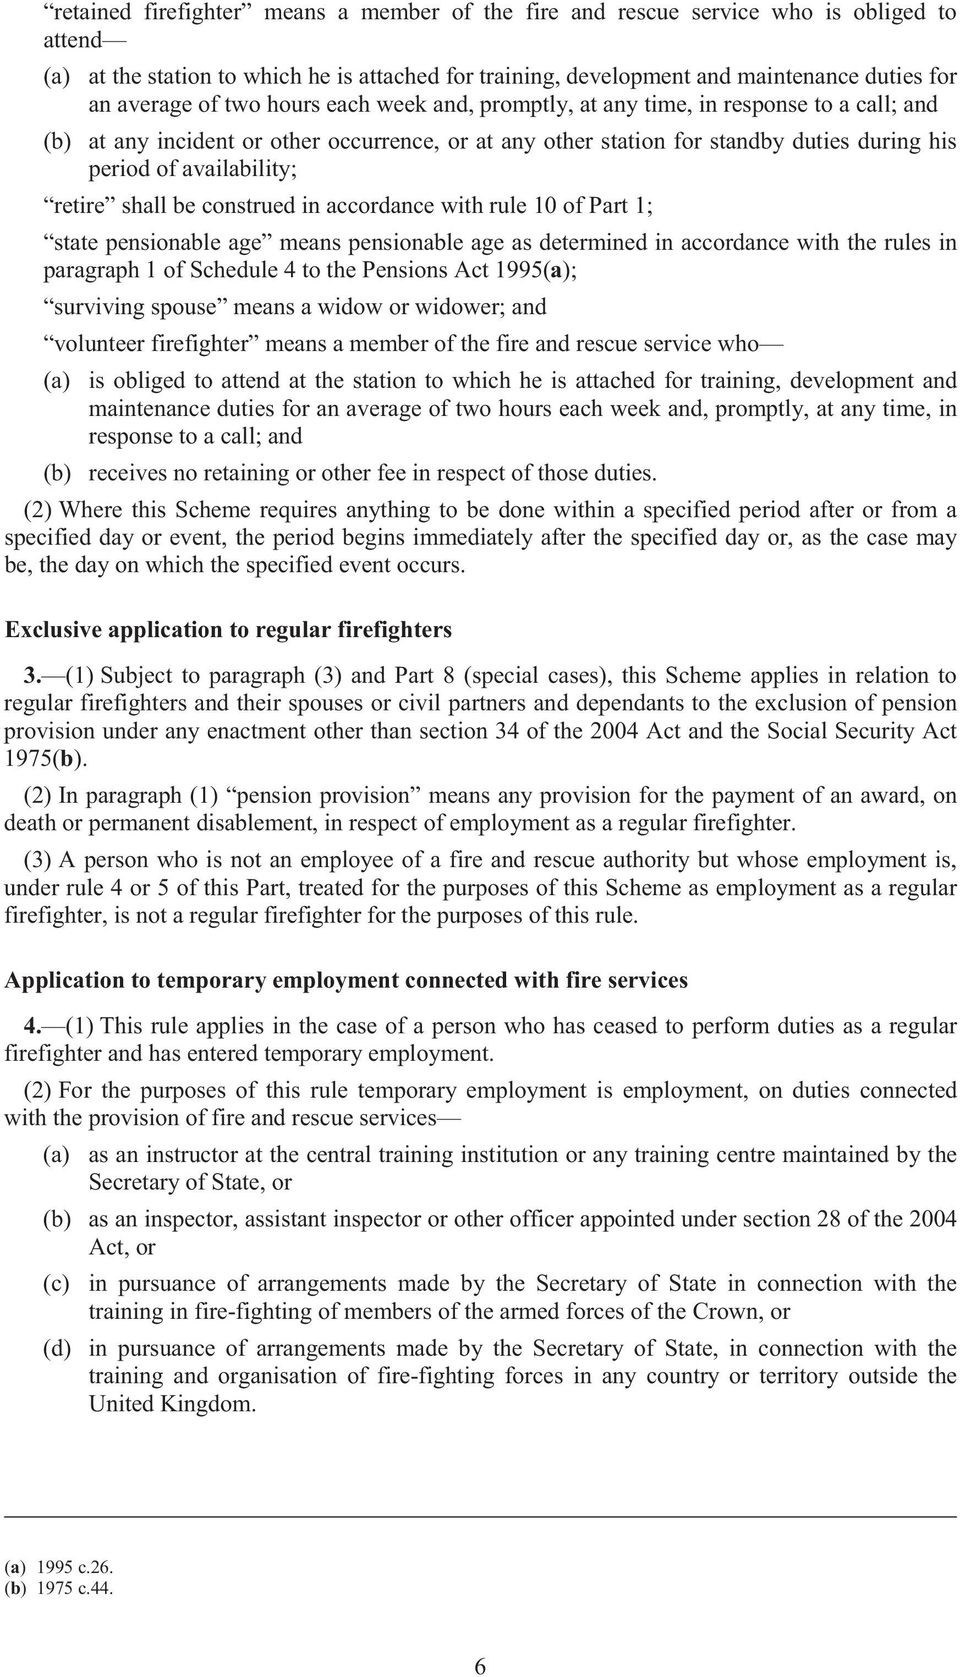 retire shall be construed in accordance with rule 10 of Part 1; state pensionable age means pensionable age as determined in accordance with the rules in paragraph 1 of Schedule 4 to the Pensions Act